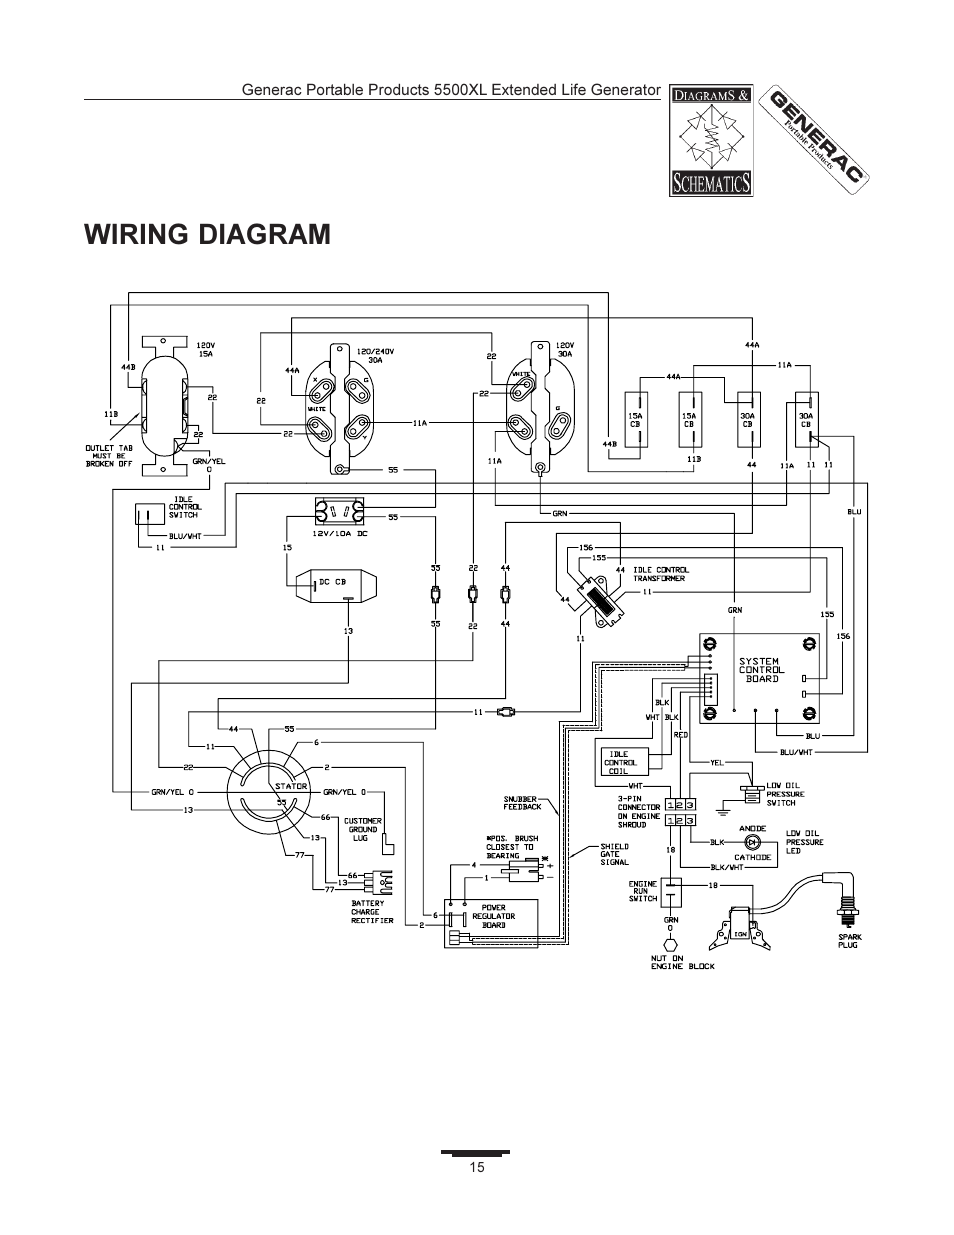 Wiring diagram | Generac 5500XL User Manual | Page 15 / 18Manuals Directory